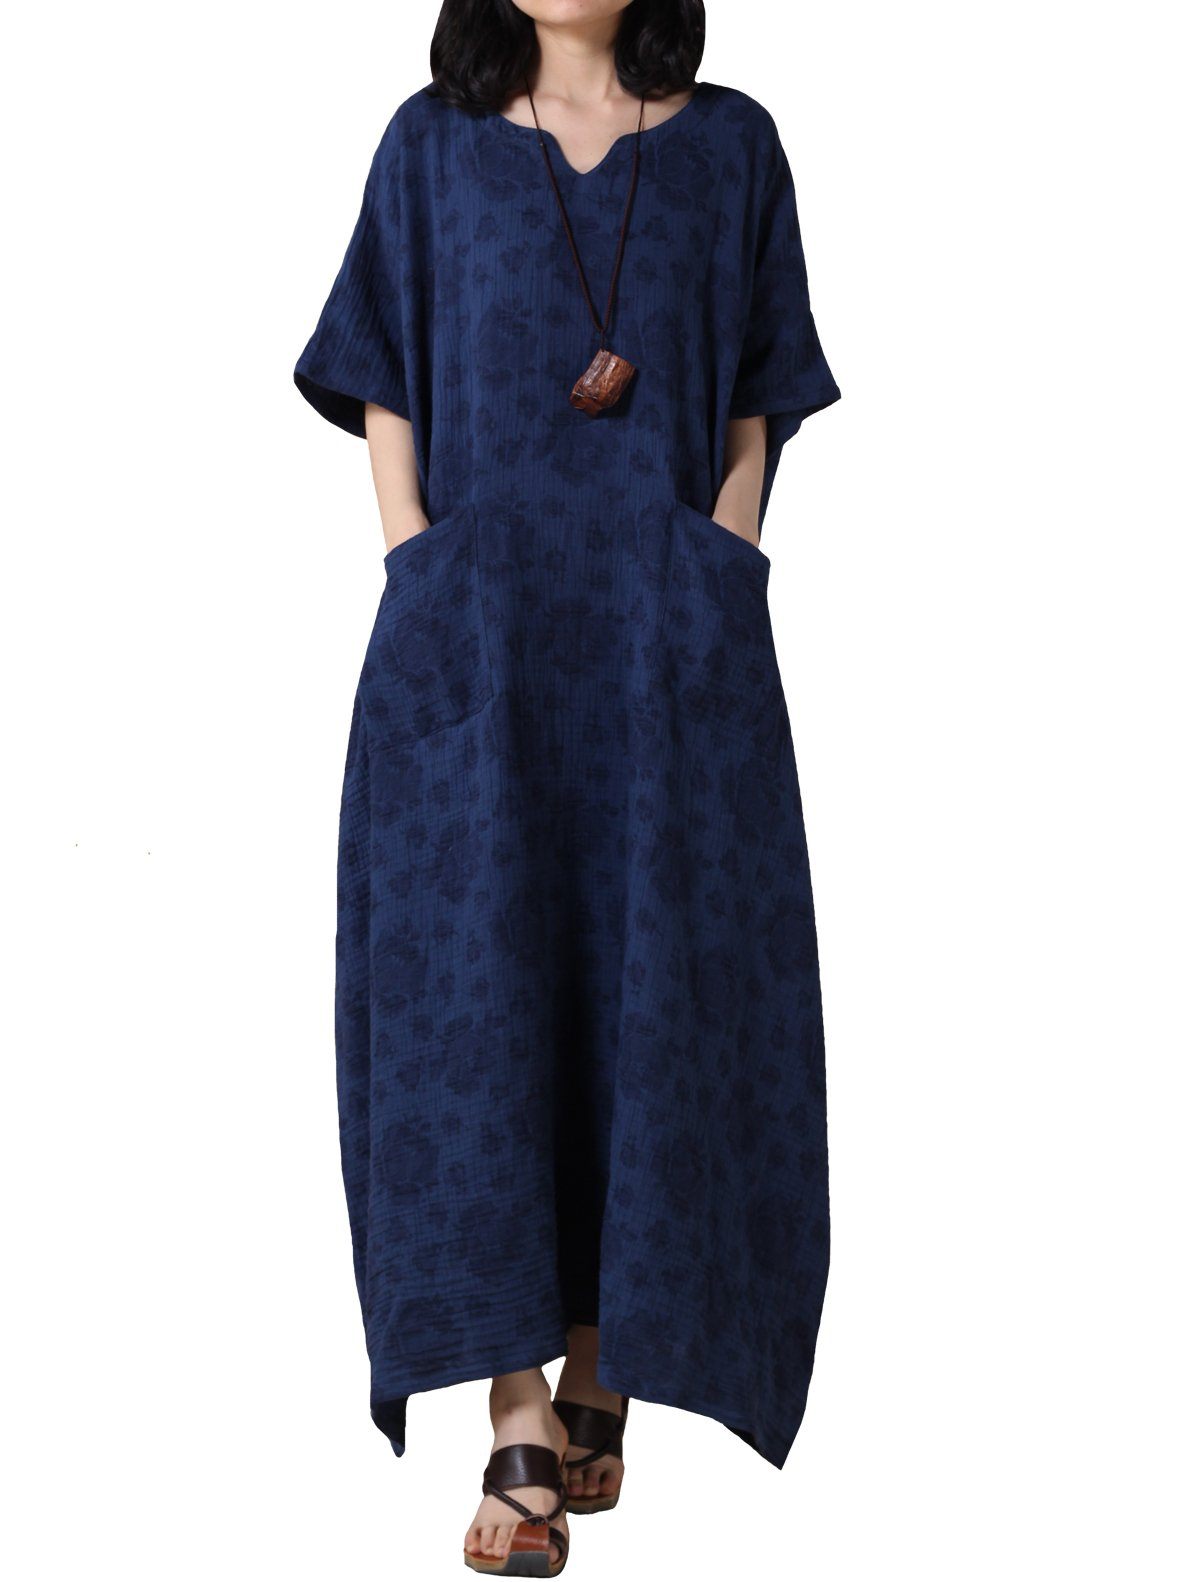 Mordenmiss Women's Cotton Linen Dresses with Pockets Plus Size Casual Travel Clothing